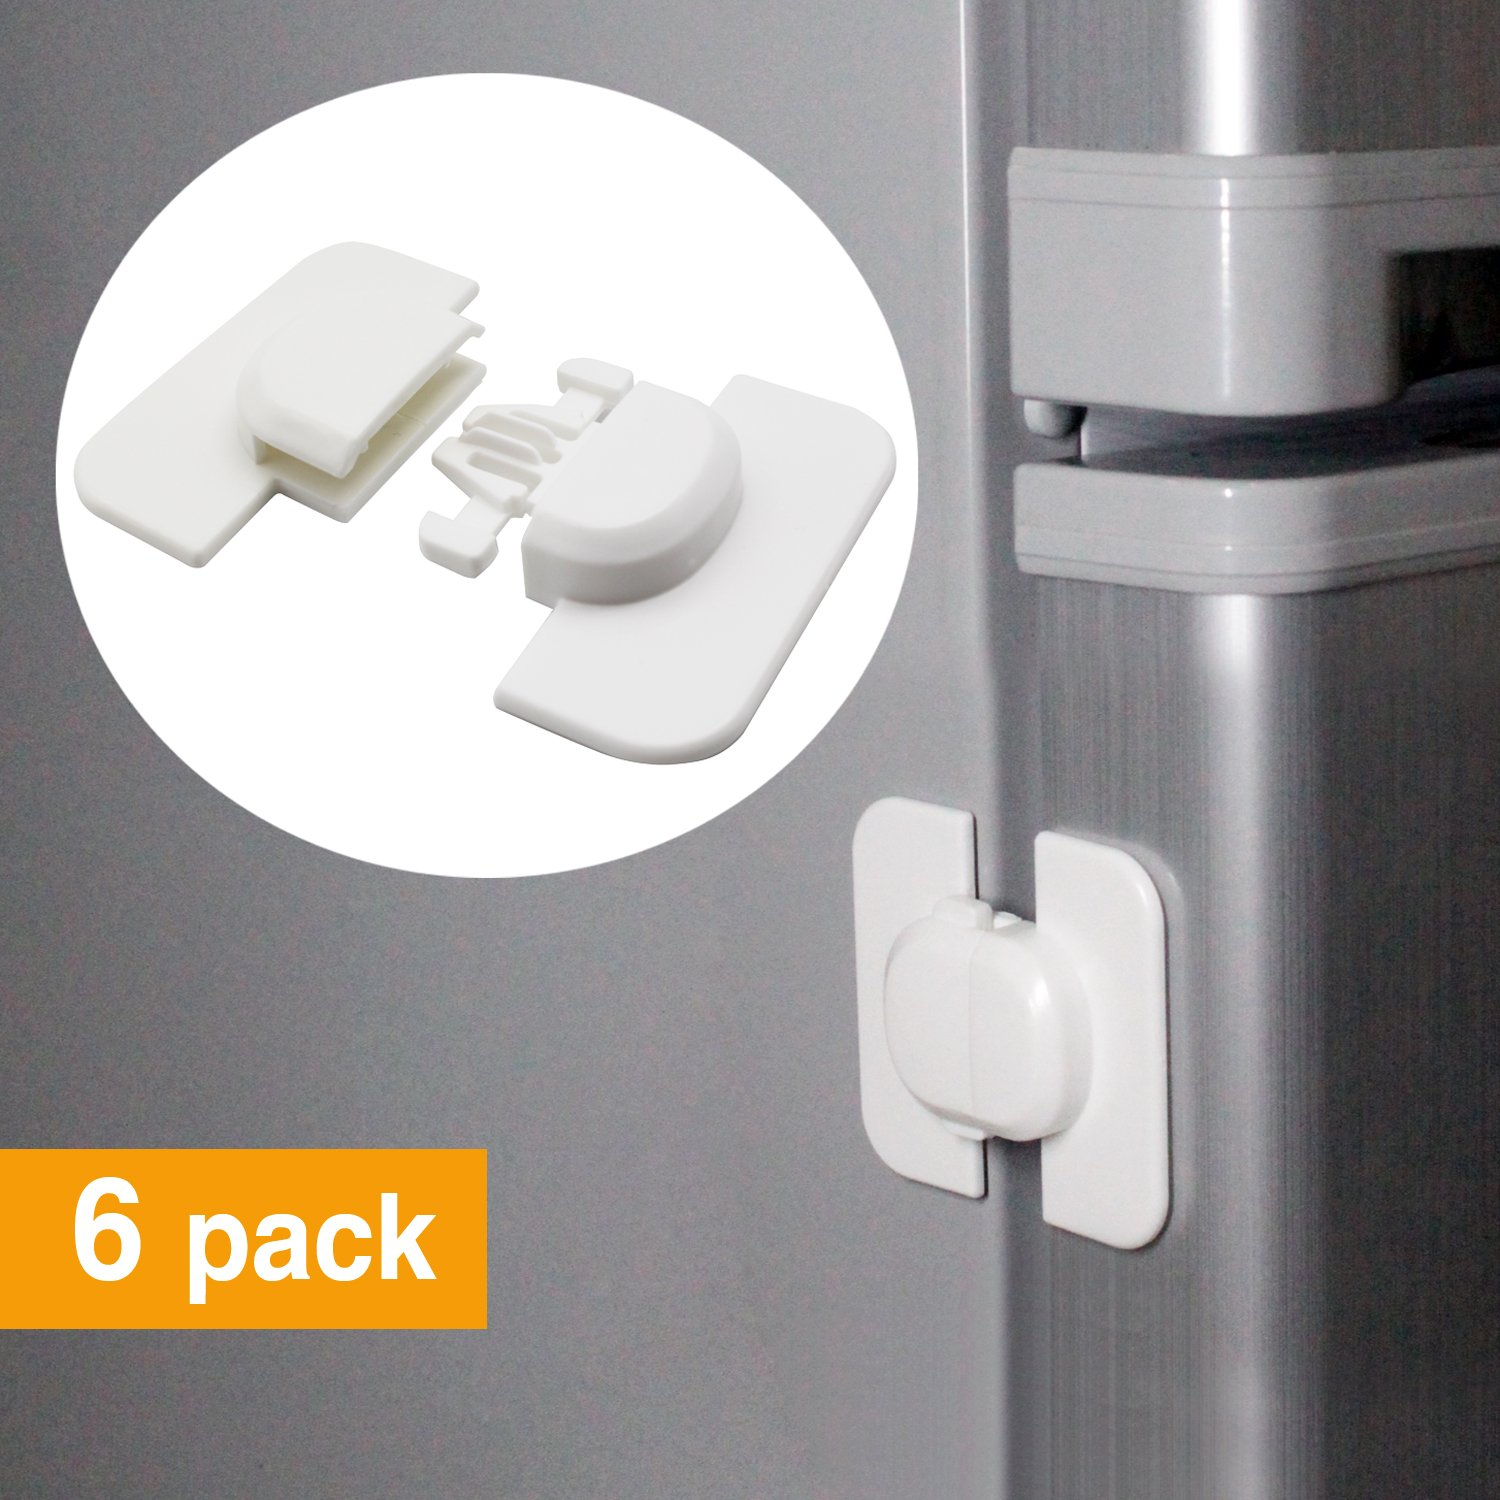 veecom Child Safety Locks for Refrigerators Doors Cabinet Drawers 6 Pack Baby Proof Locks (Upgrade) by veecom (Image #1)